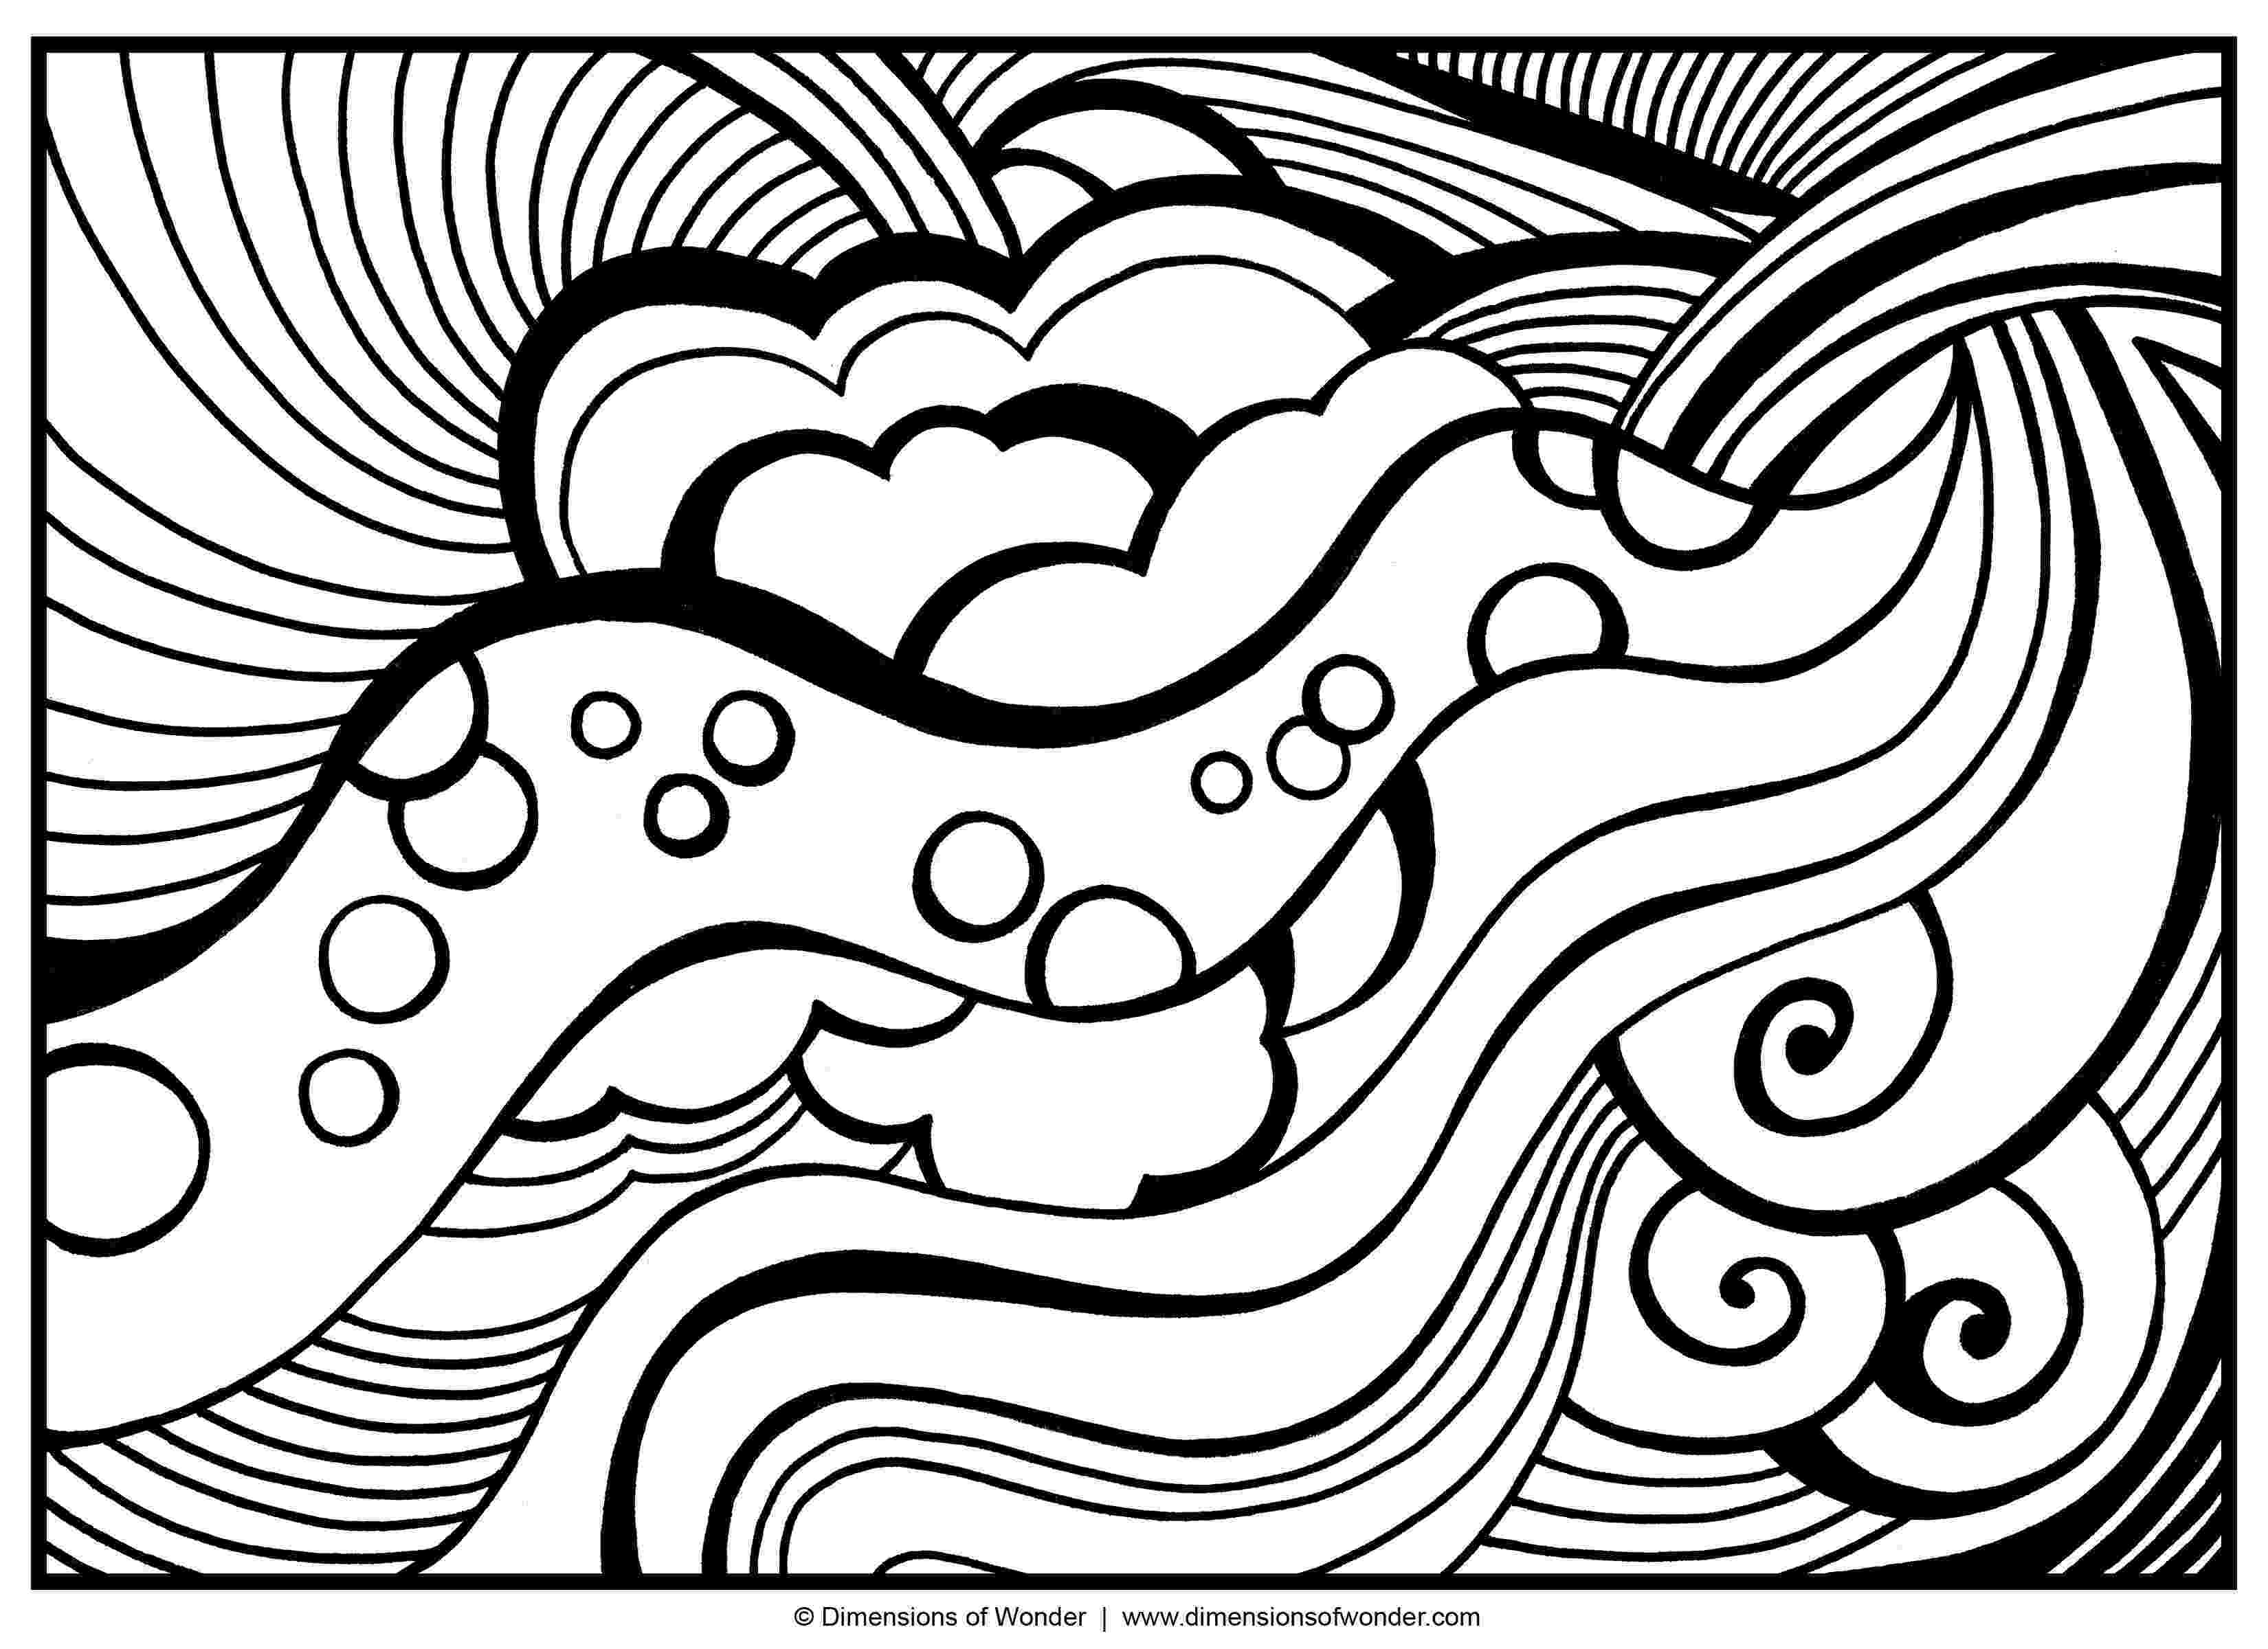 adult coloring pages abstract abstract coloring pages free large images recipes pages coloring adult abstract